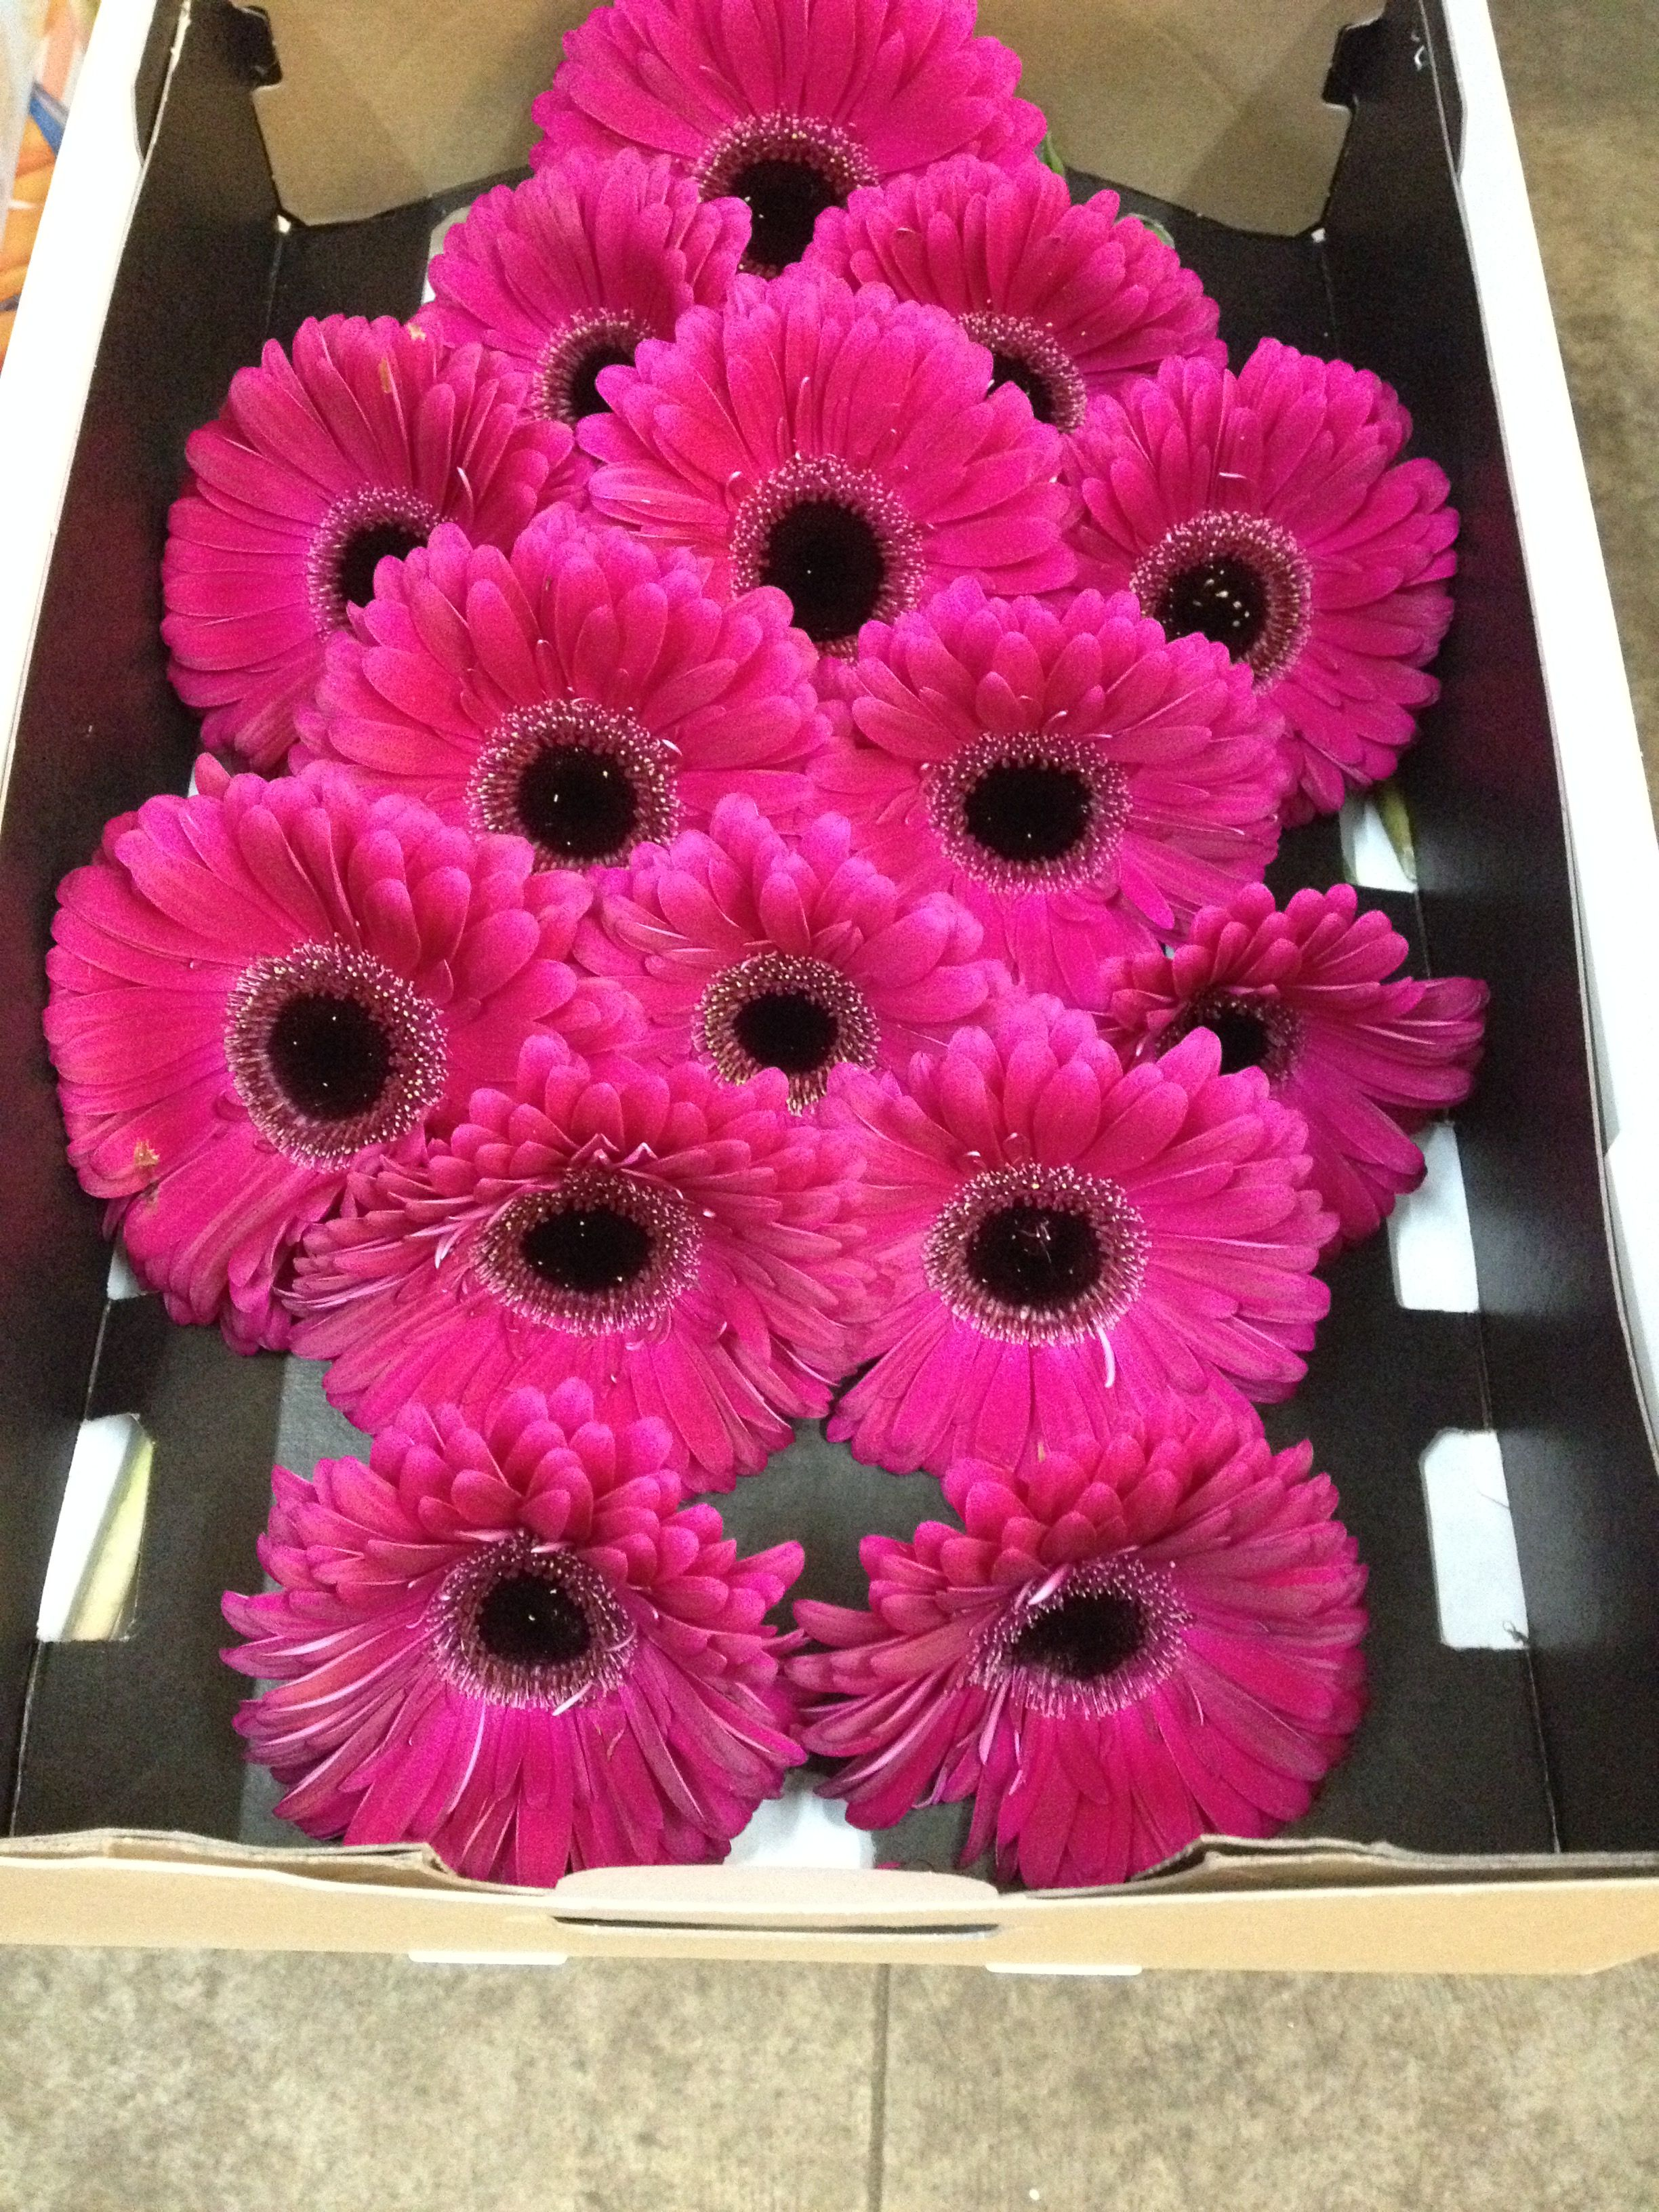 Wholesale Fresh Flowers for DIY weddings and events Diy